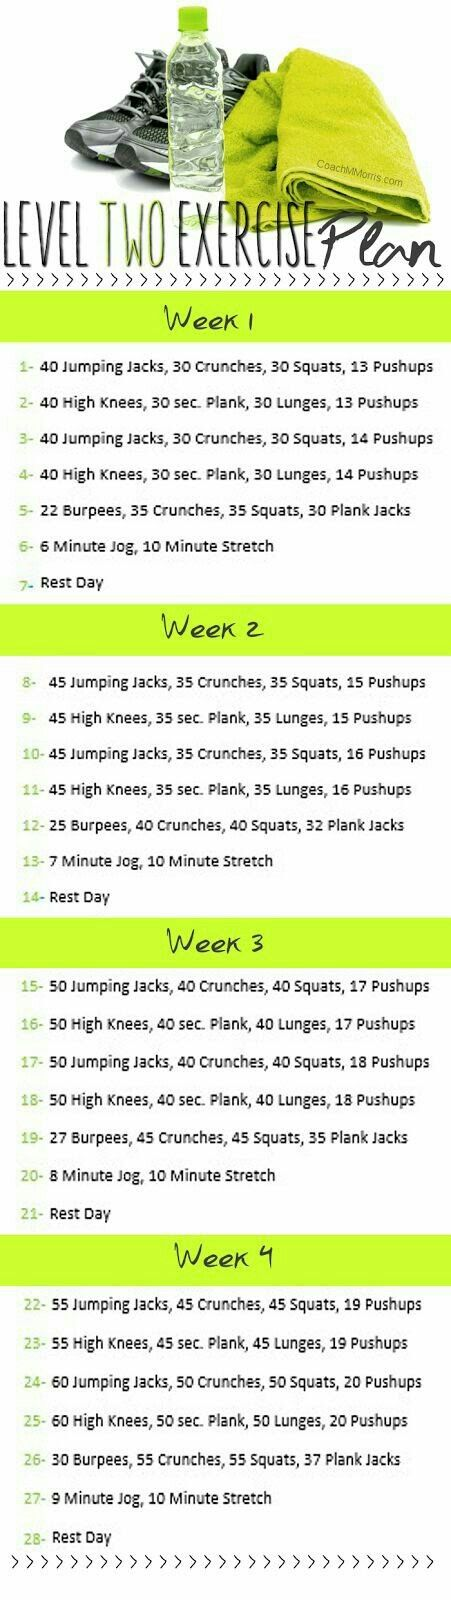 Pin by Crystal Ledwig on Workouts Pinterest Workout, Exercises - weekly exercise plans